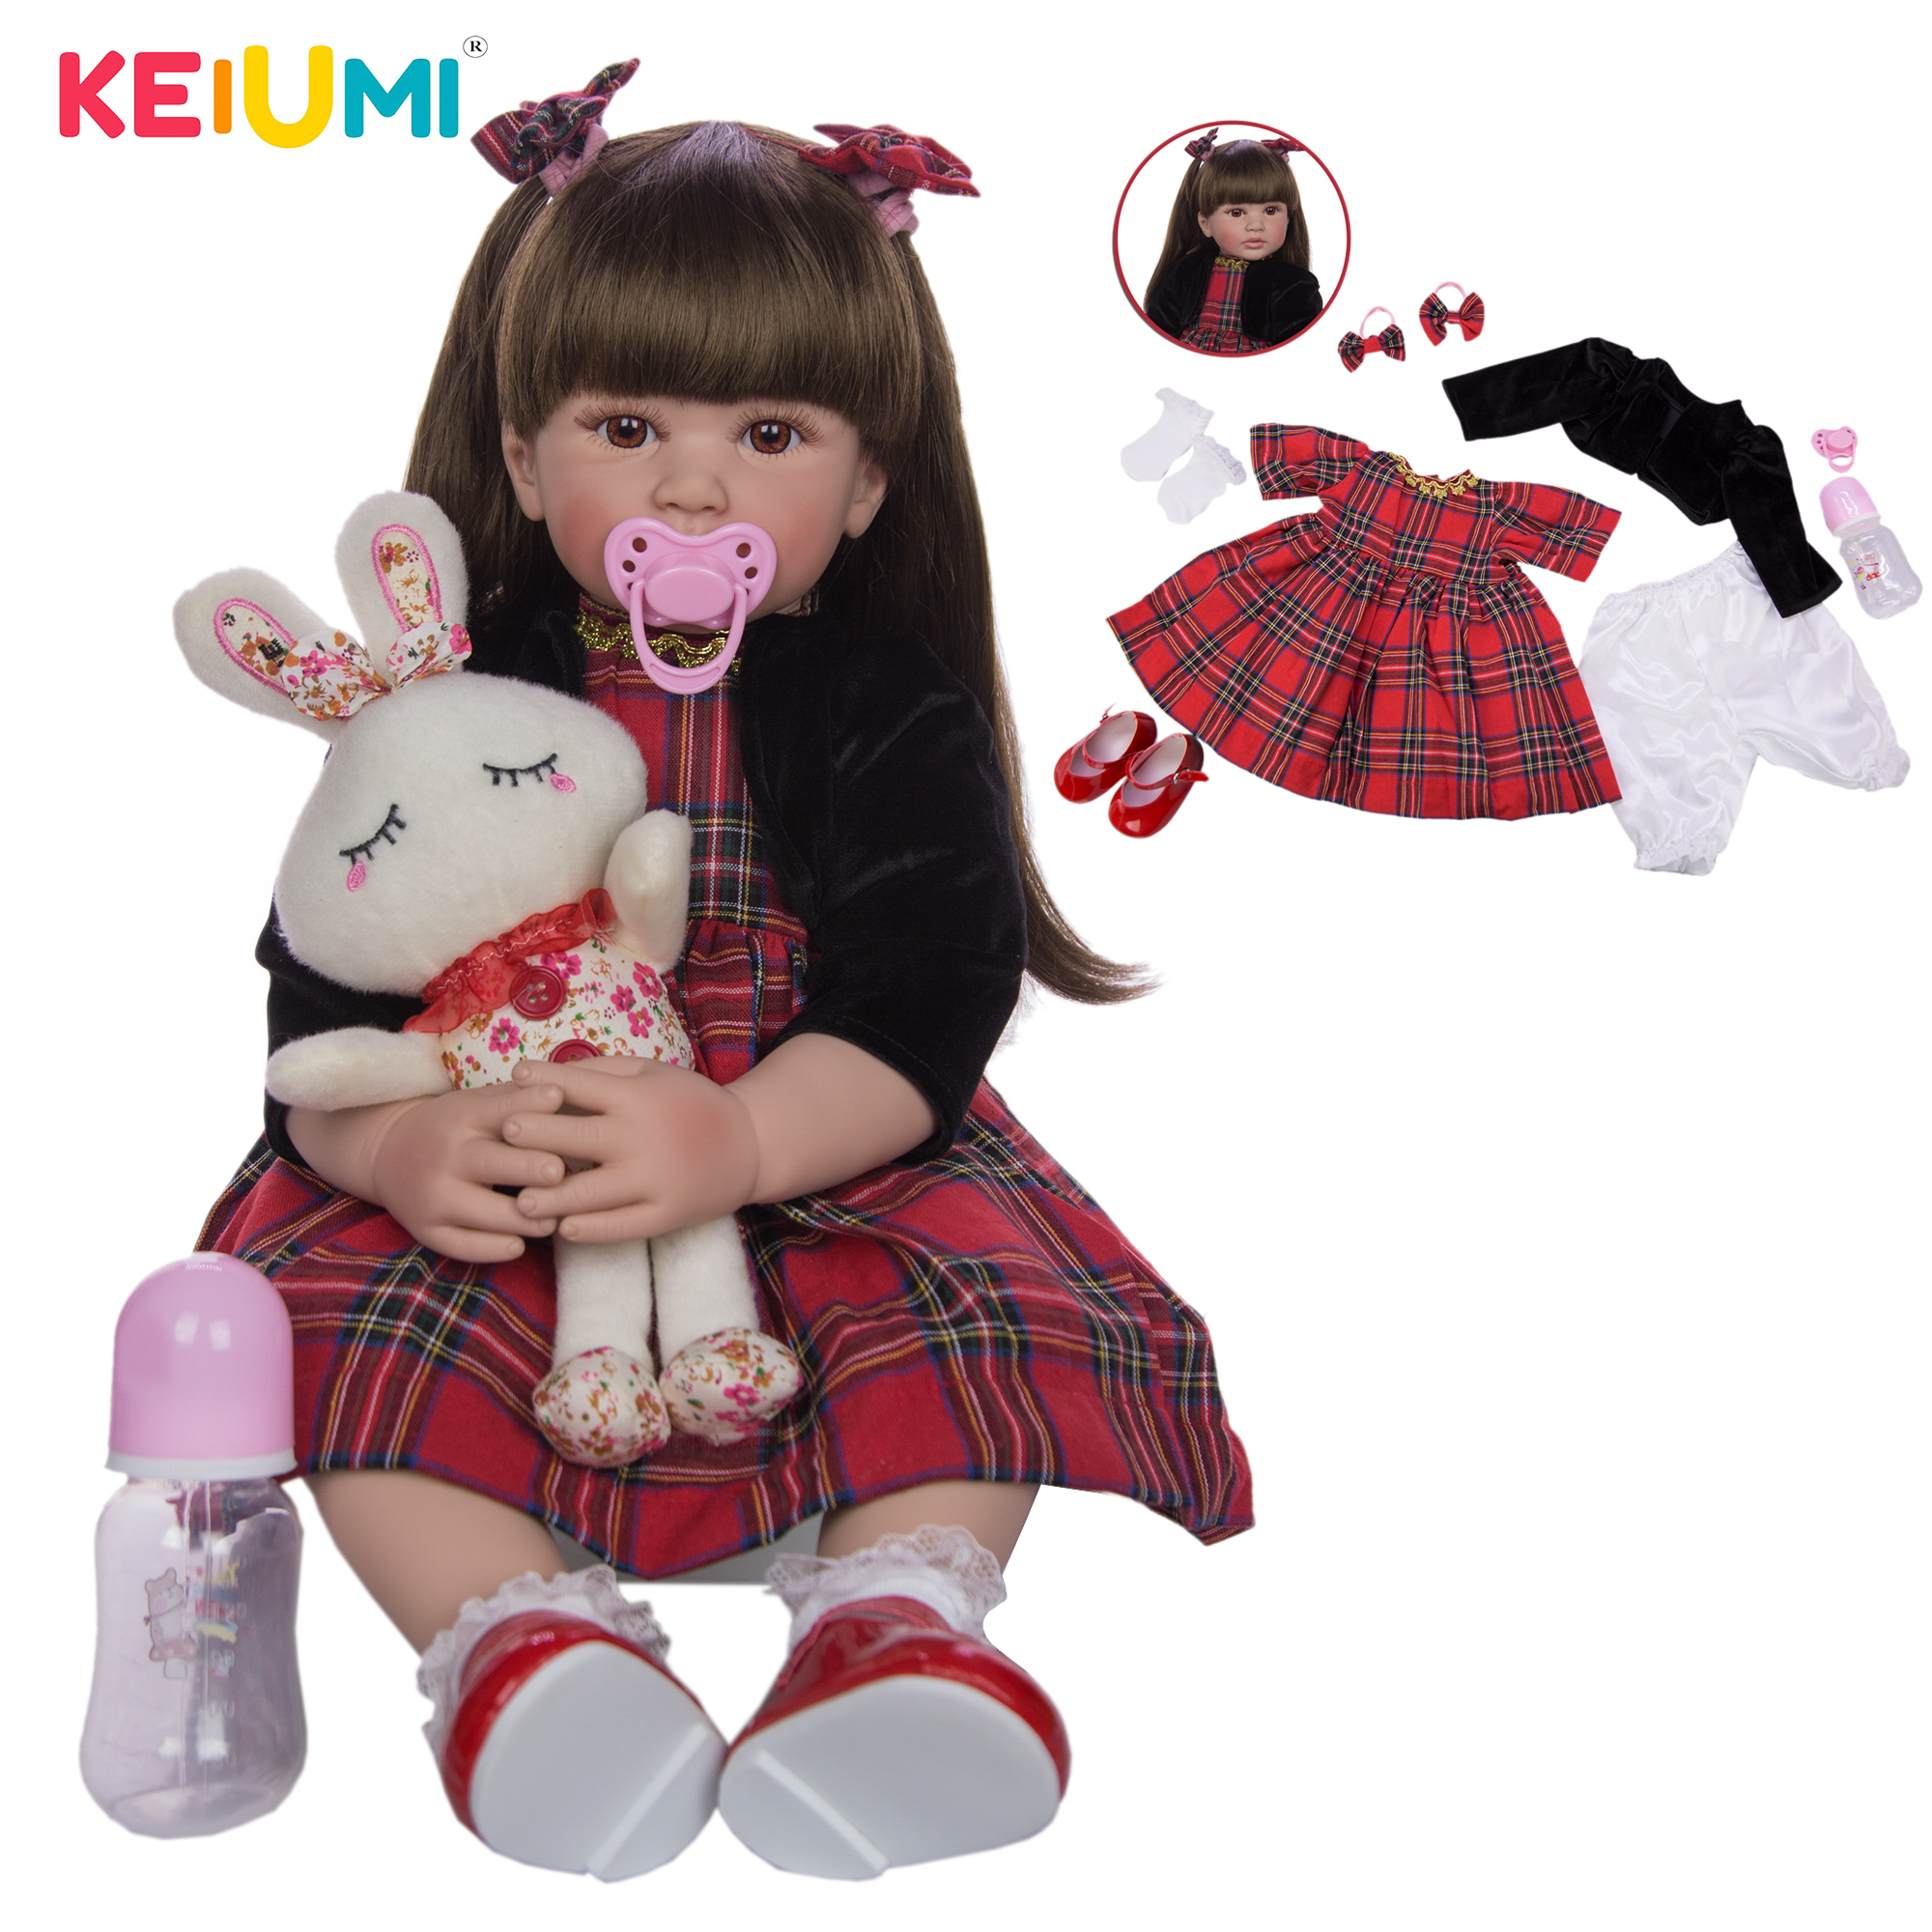 KEIUMI 24 Inch Reborn Dolls 60 cm Silicone Soft Realistic Princess Girl Baby Doll For Sale